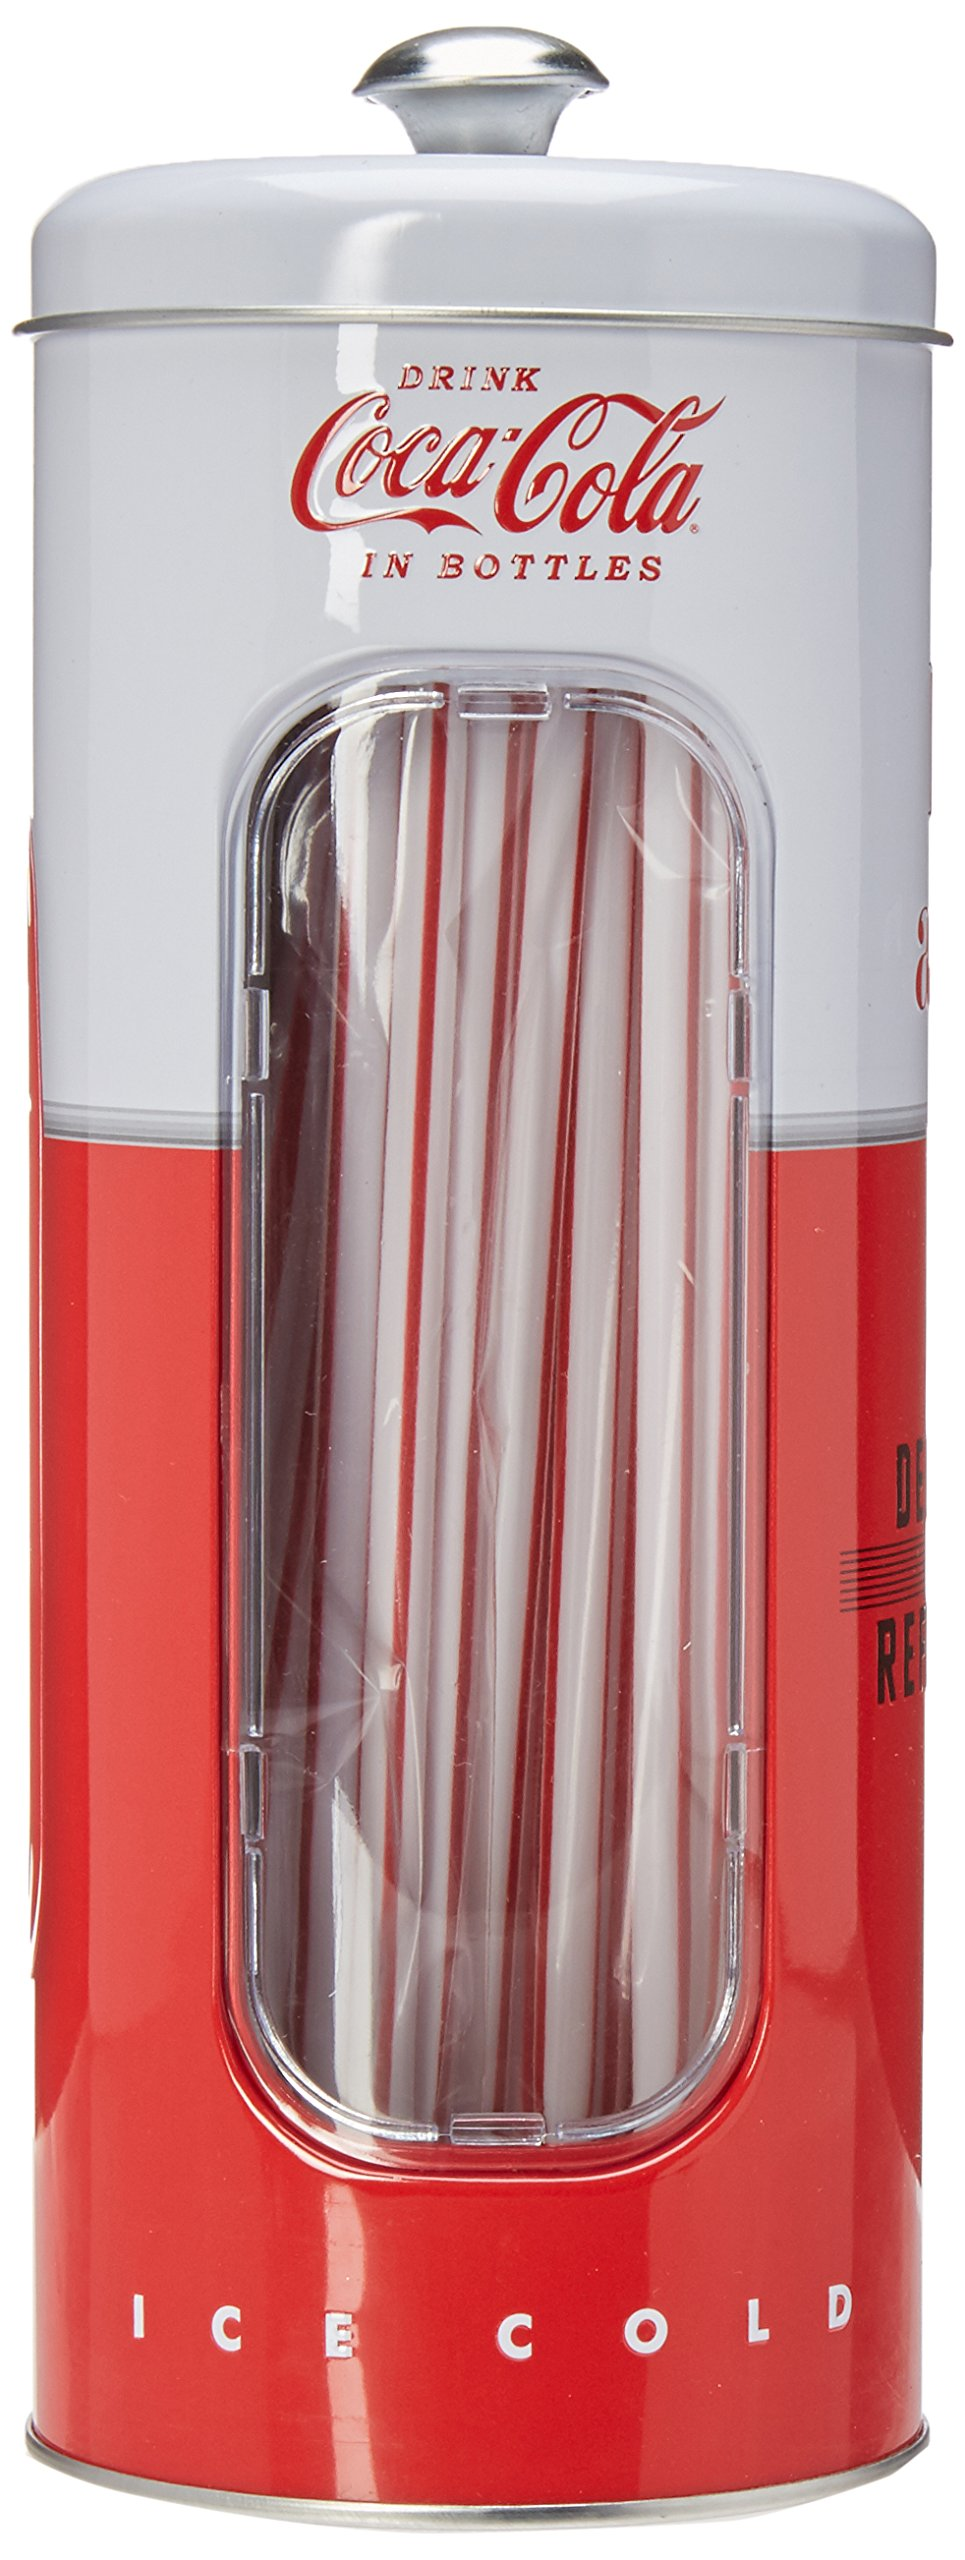 Coca-cola Tin Collectible Drinking Straw Holder Dispenser With 50 Straws by Coca-Cola